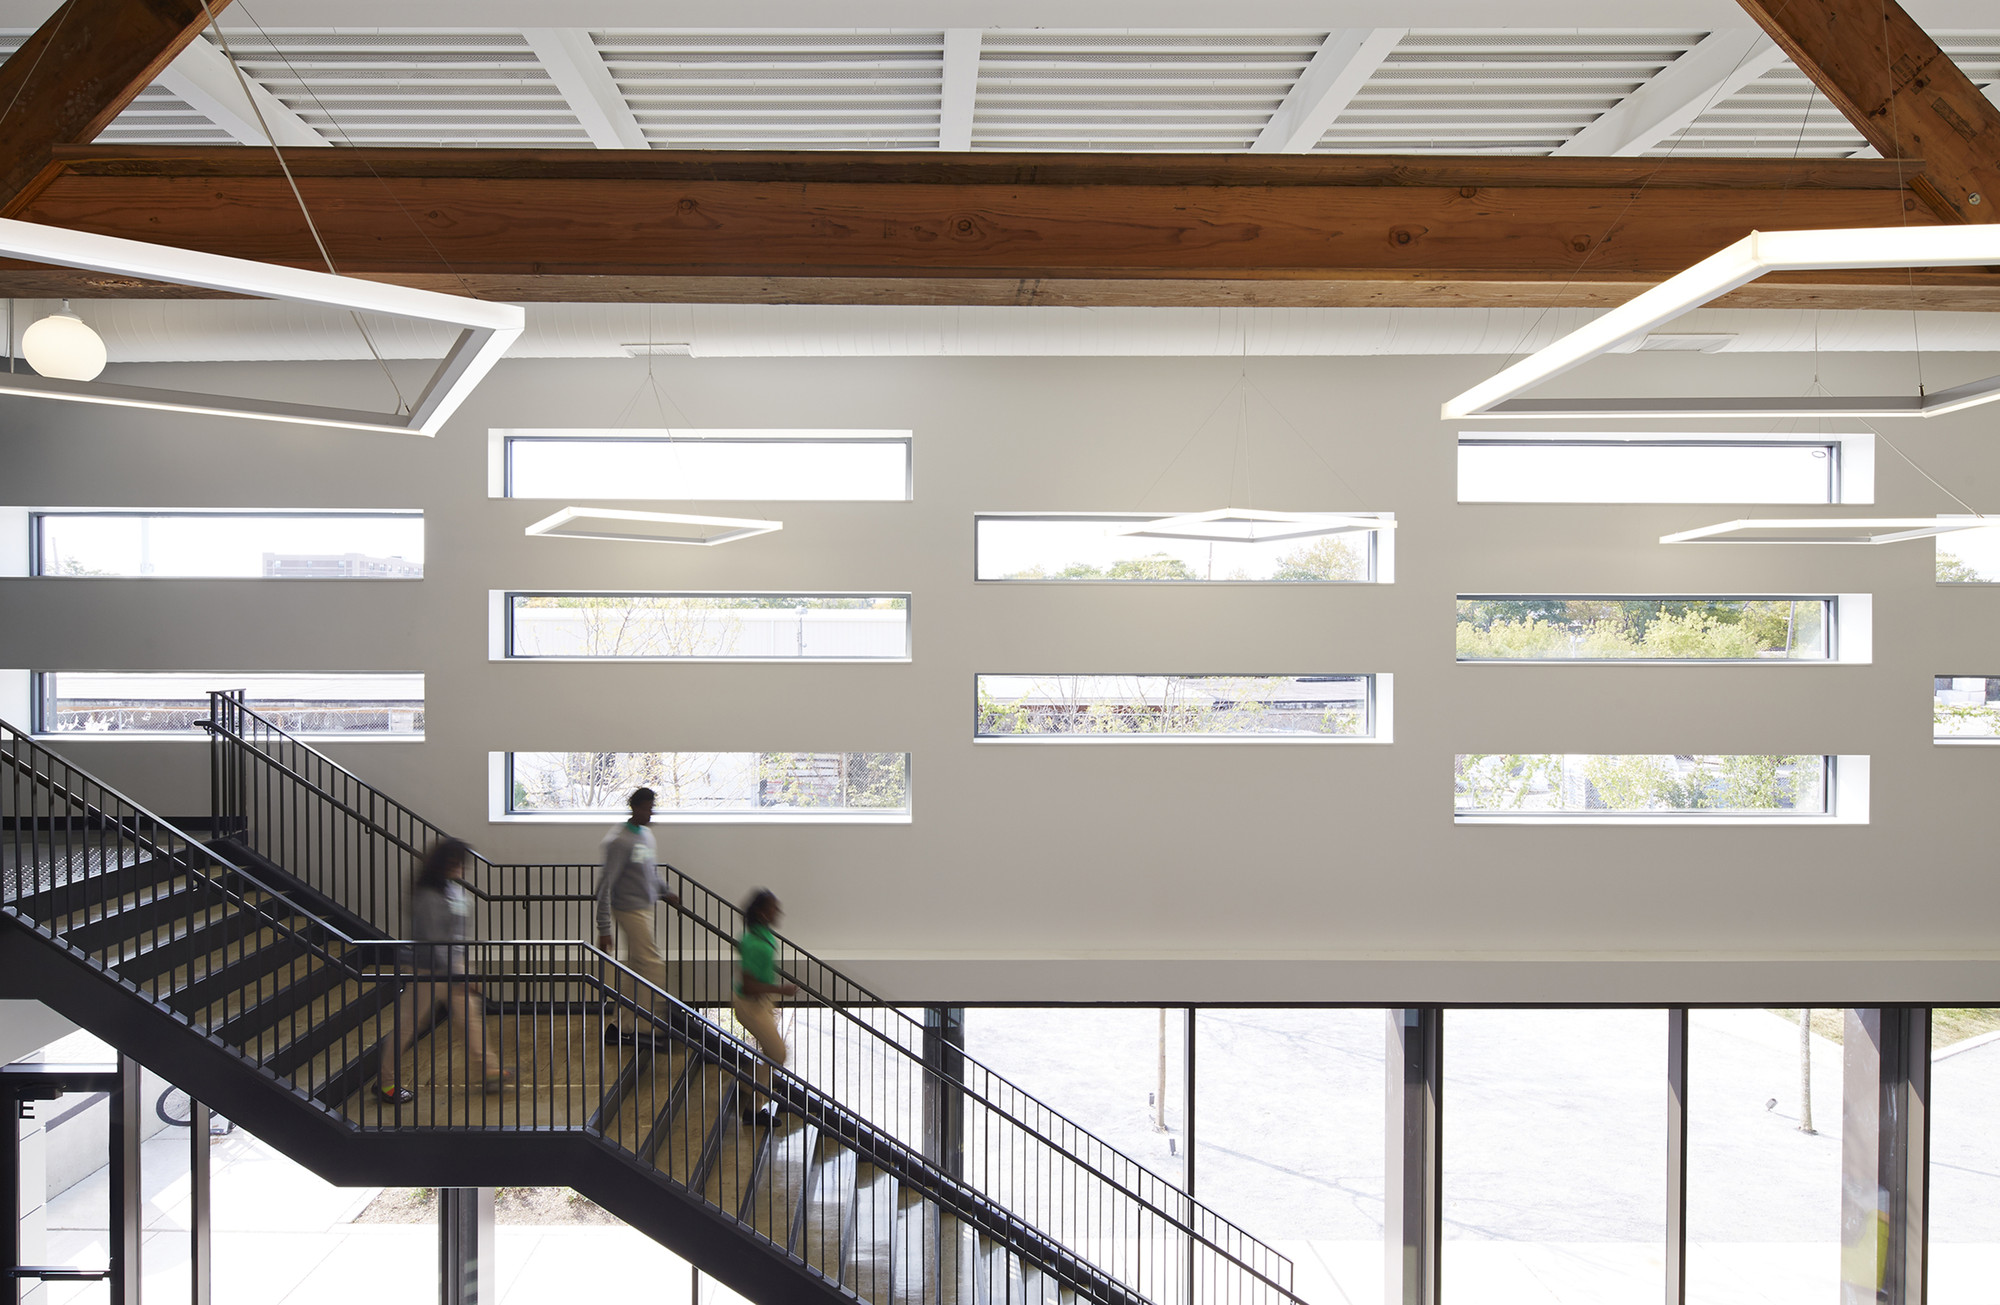 Intrinsic School / Wheeler Kearns Architects, © Steve Hall - Hedrich Blessing Photography